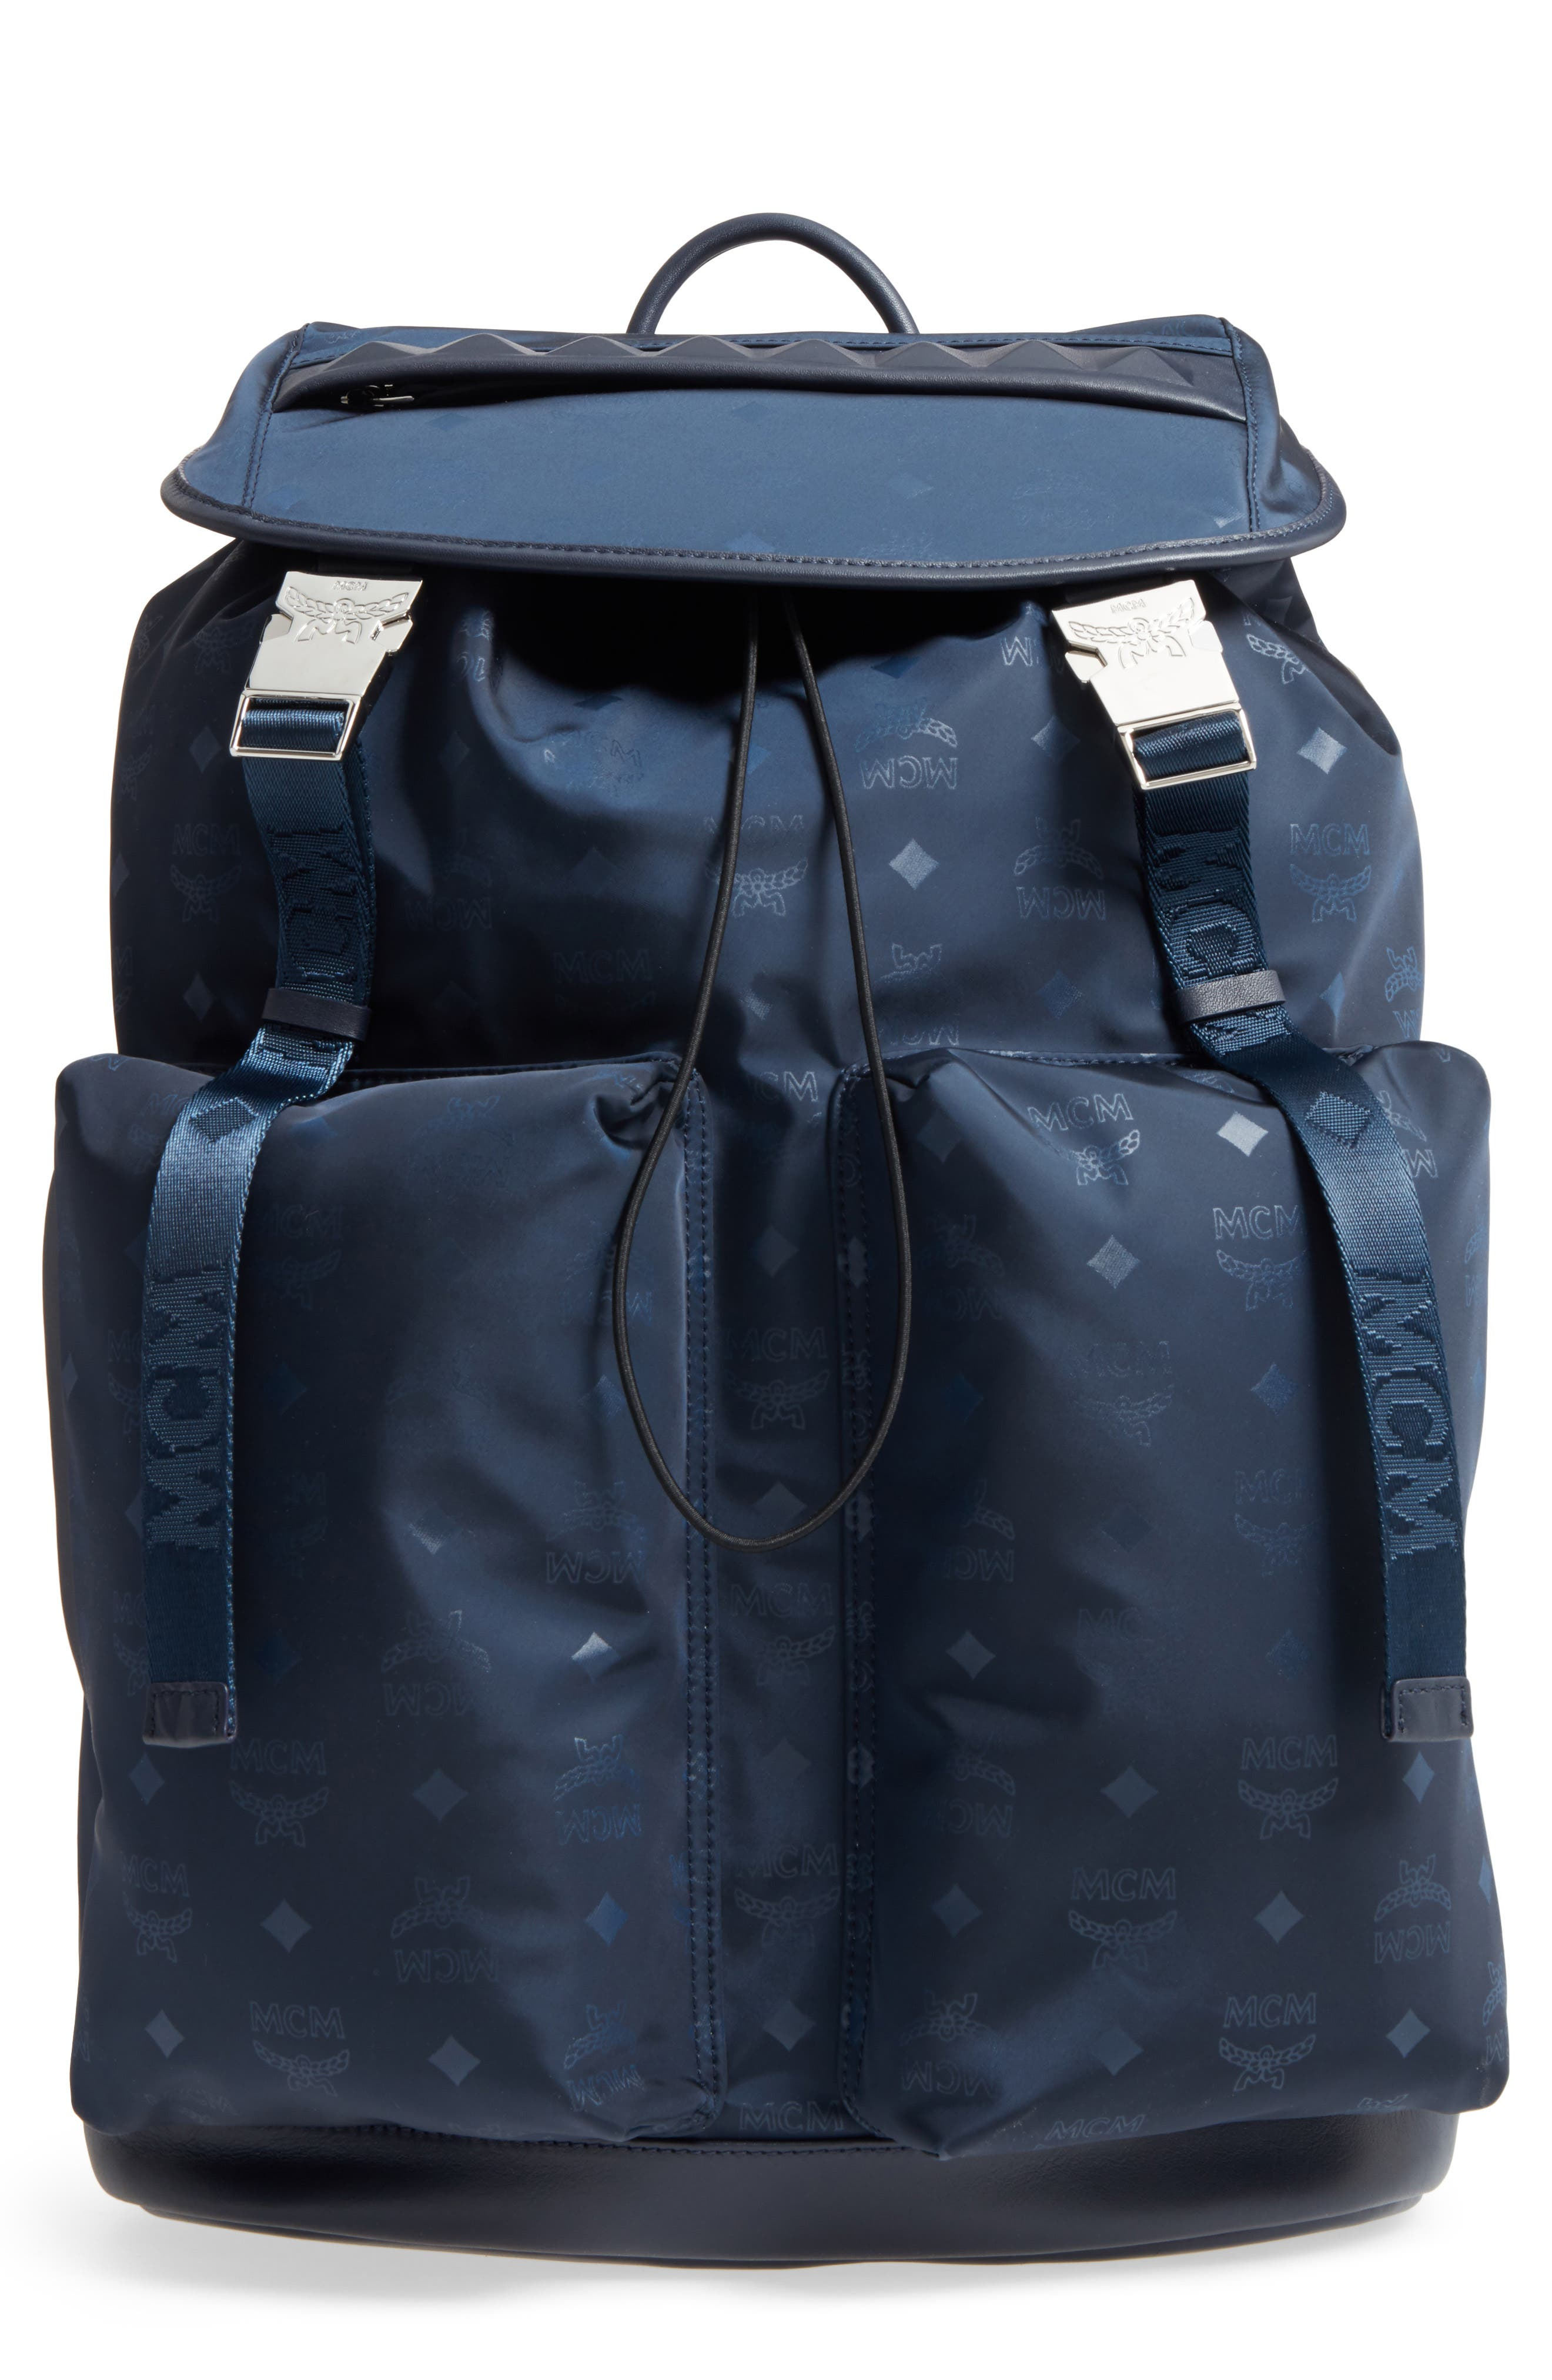 Dieter Backpack,                         Main,                         color, Navy Blue